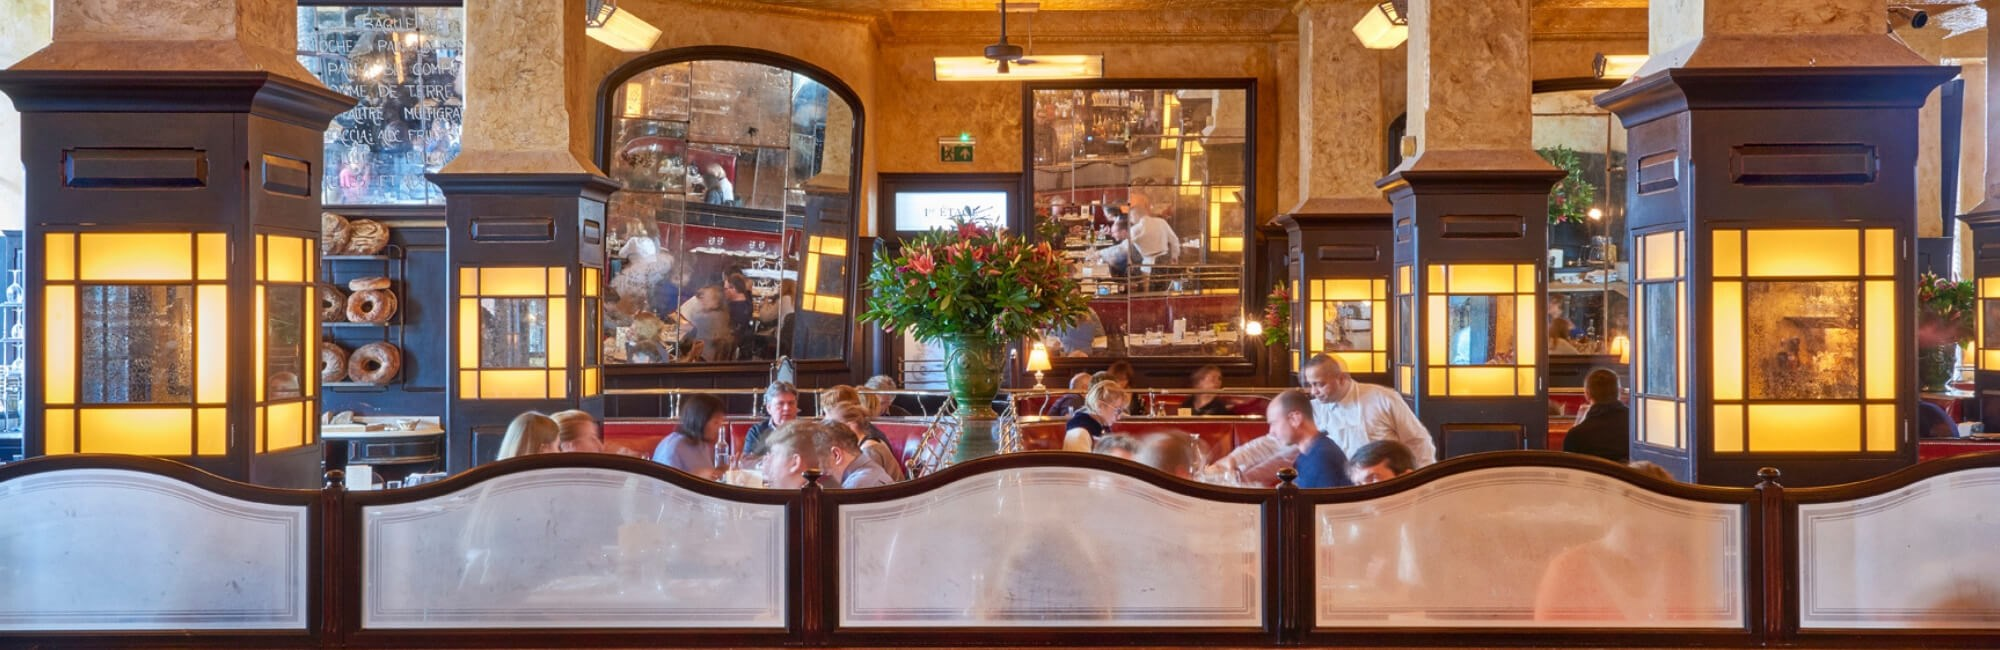 Balthazar is a restaurant in Covent Garden open all-day seven days a week